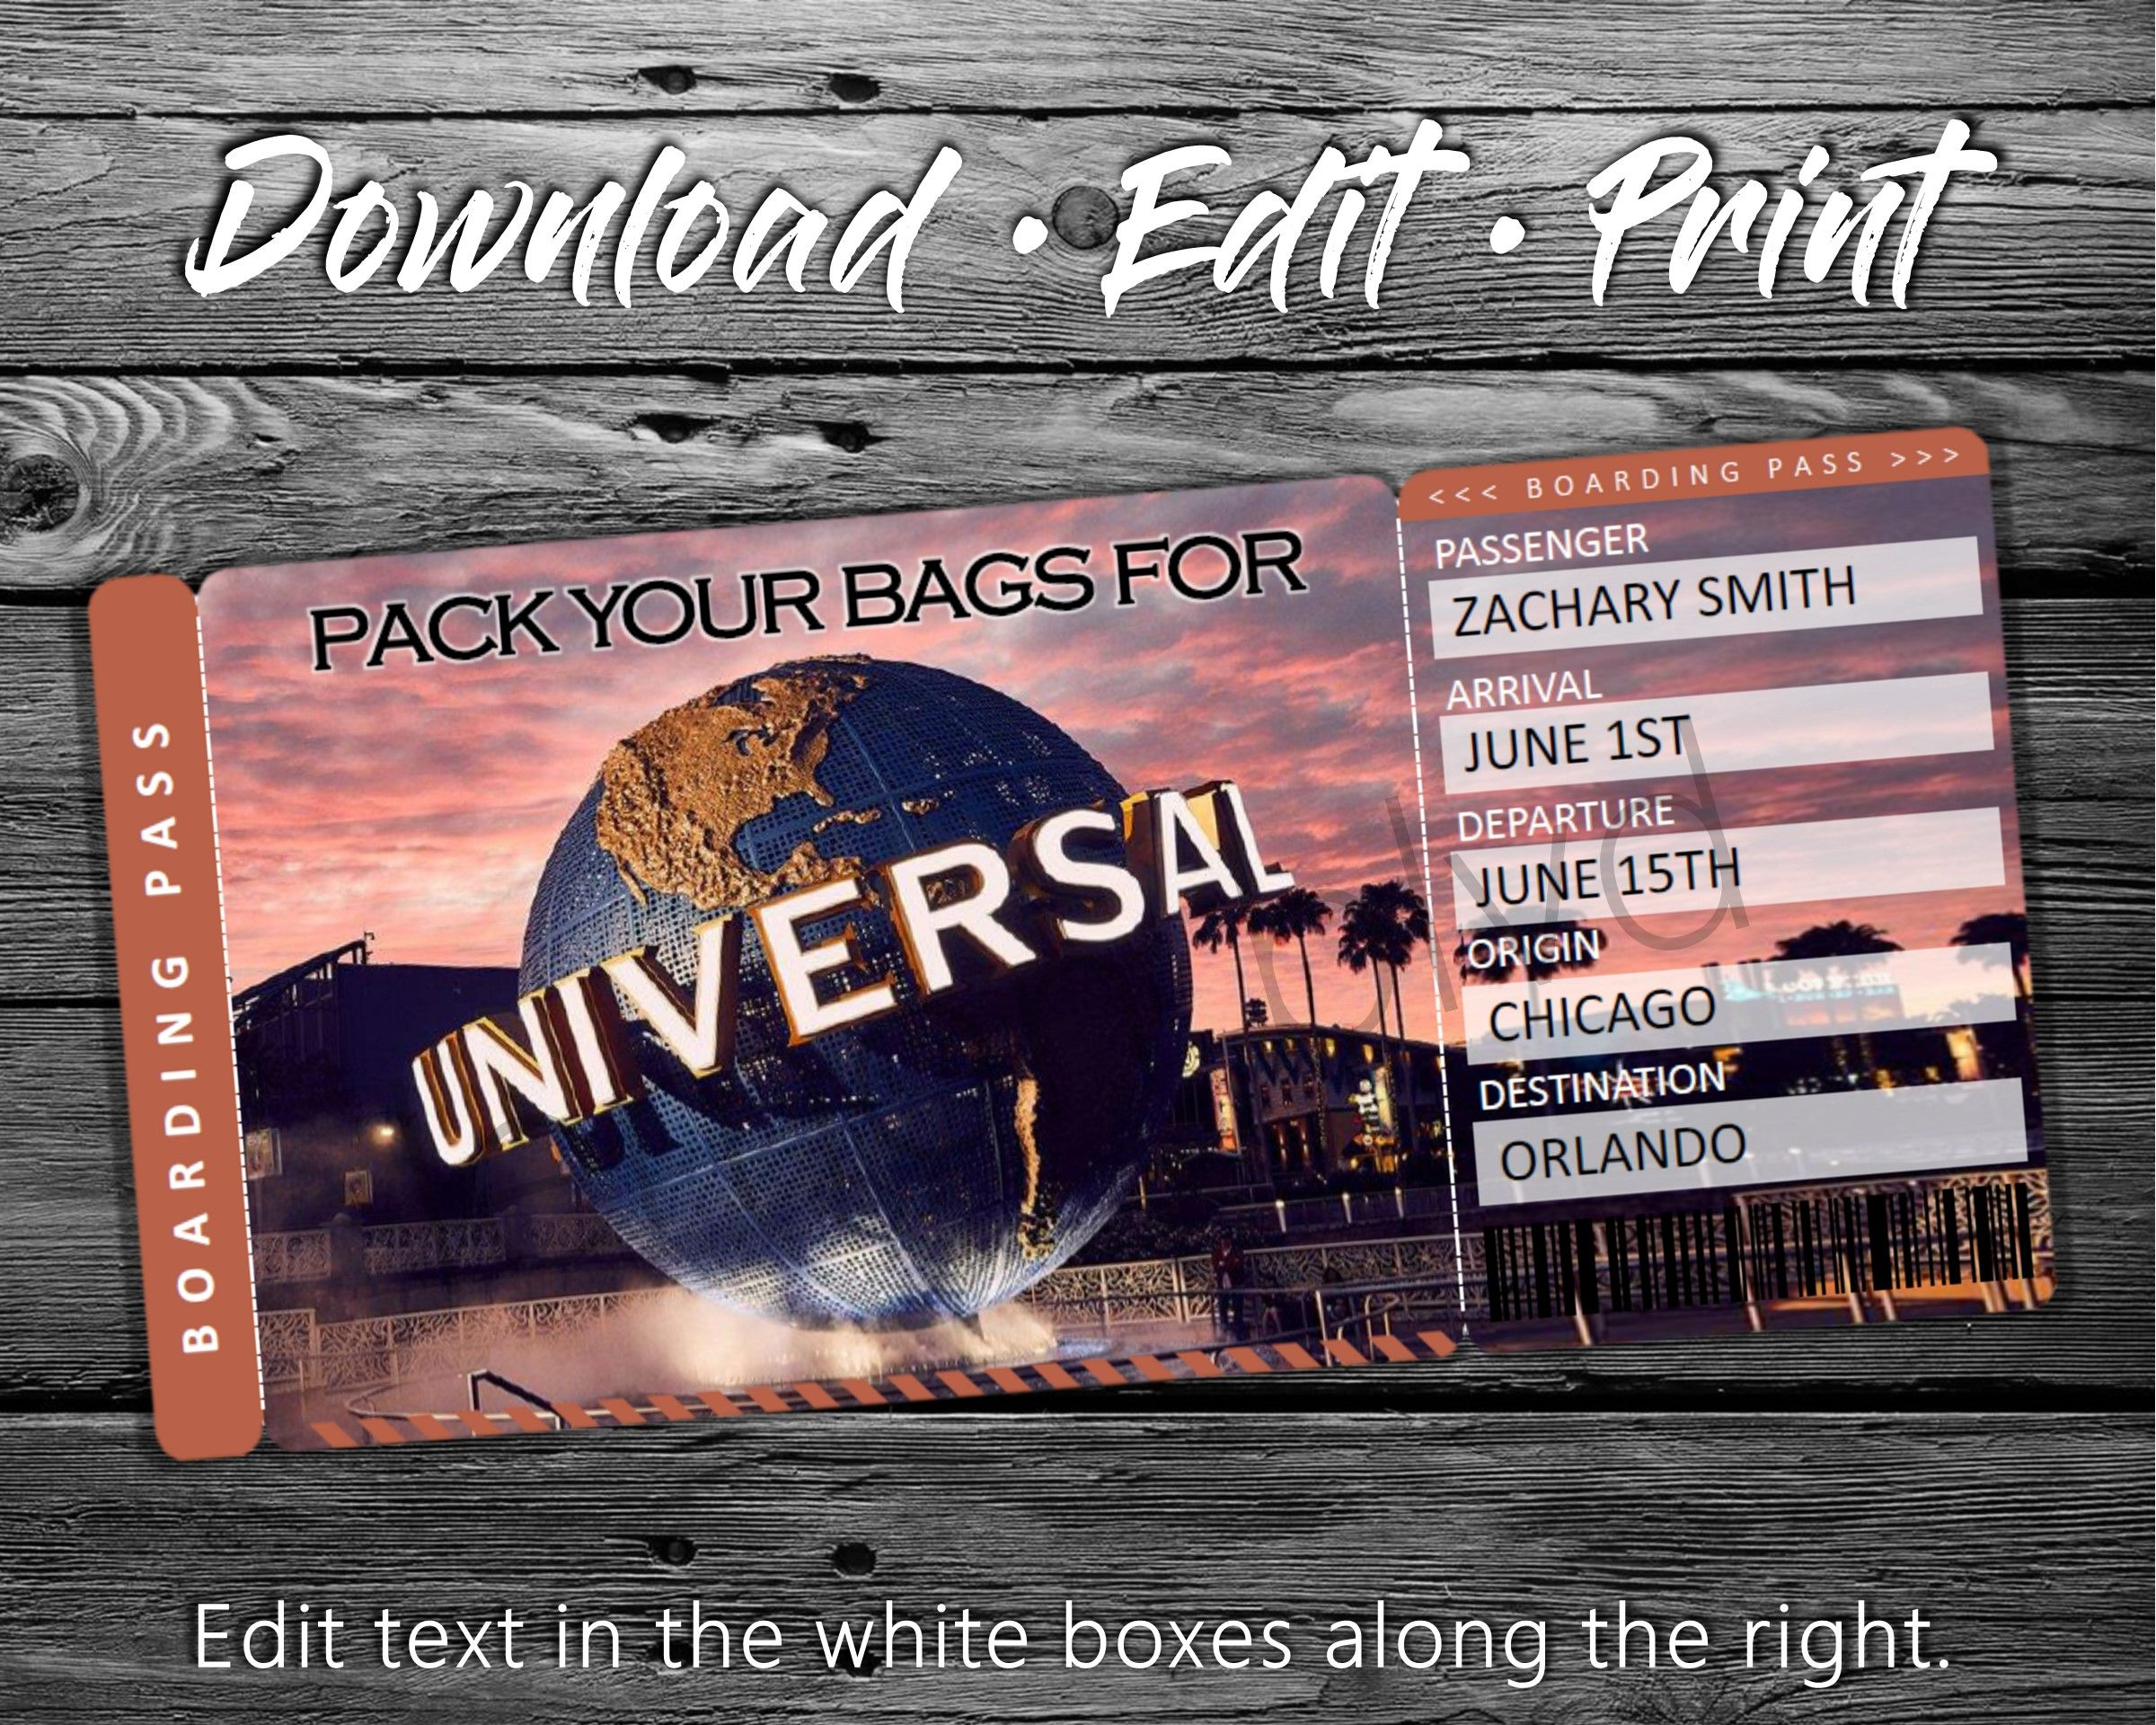 Surprise Universal Trip Ticket Vacation Tickets Instant Download Boarding Pass Printable Trip Ticket Surprise Universal Studios In 2021 Surprise Trip Reveal Surprise Trip Universal Studios Surprise Trip Reveal